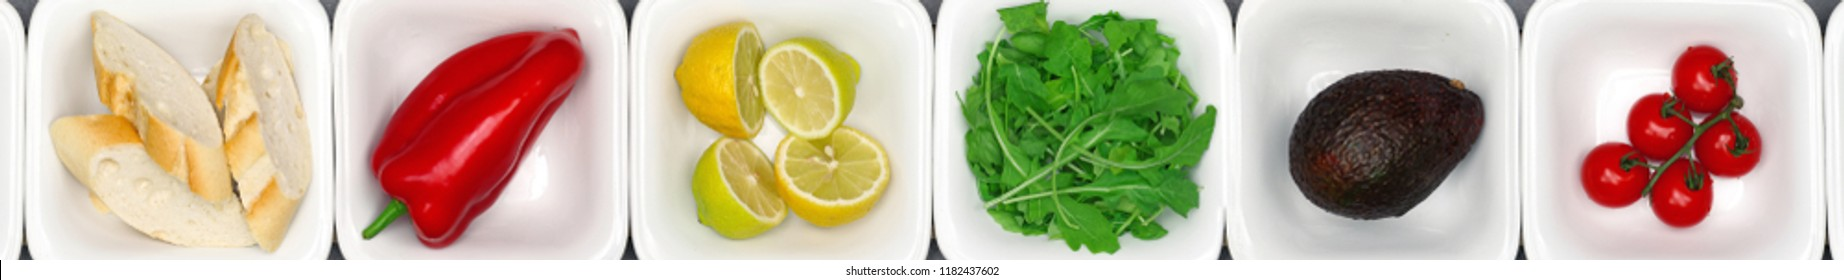 Food ingredients prepared for cooking in white bowls.